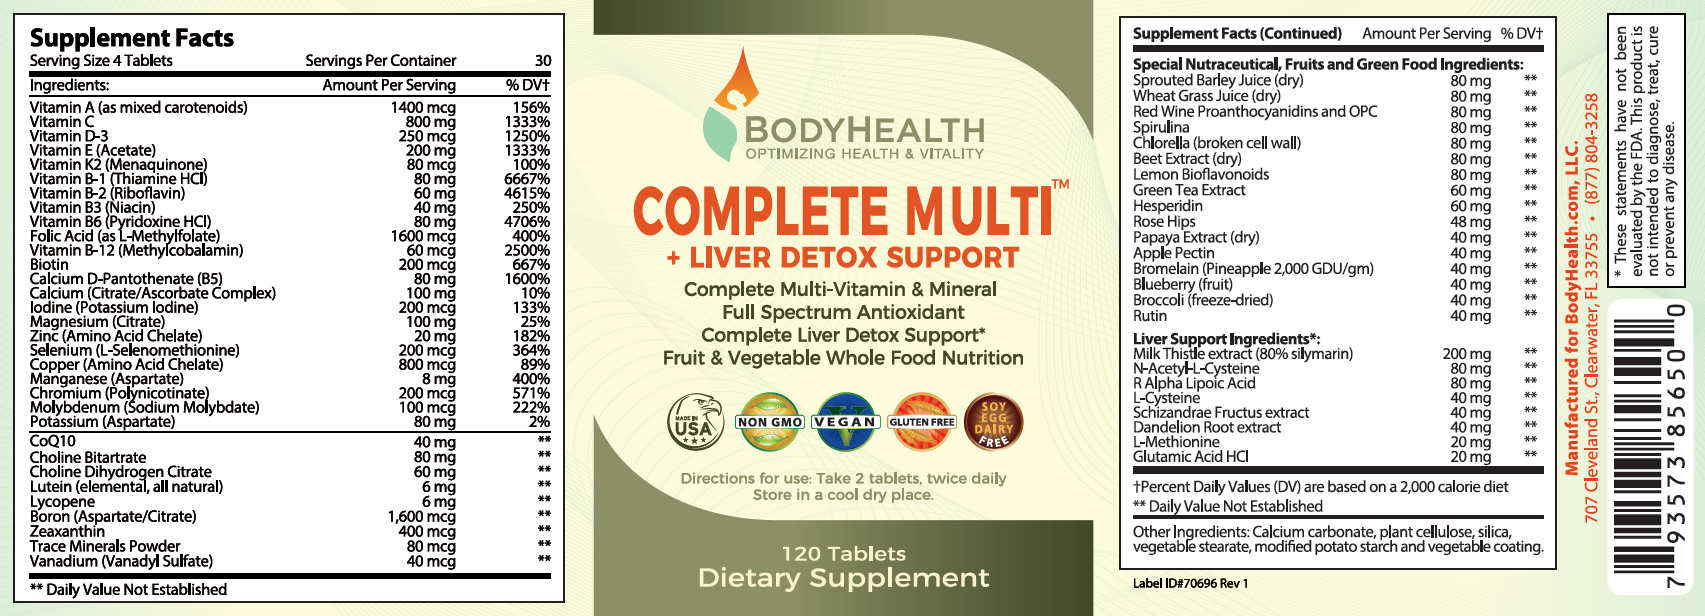 BodyHealth Complete Multi + Liver Detox Support Label and Supplement Facts